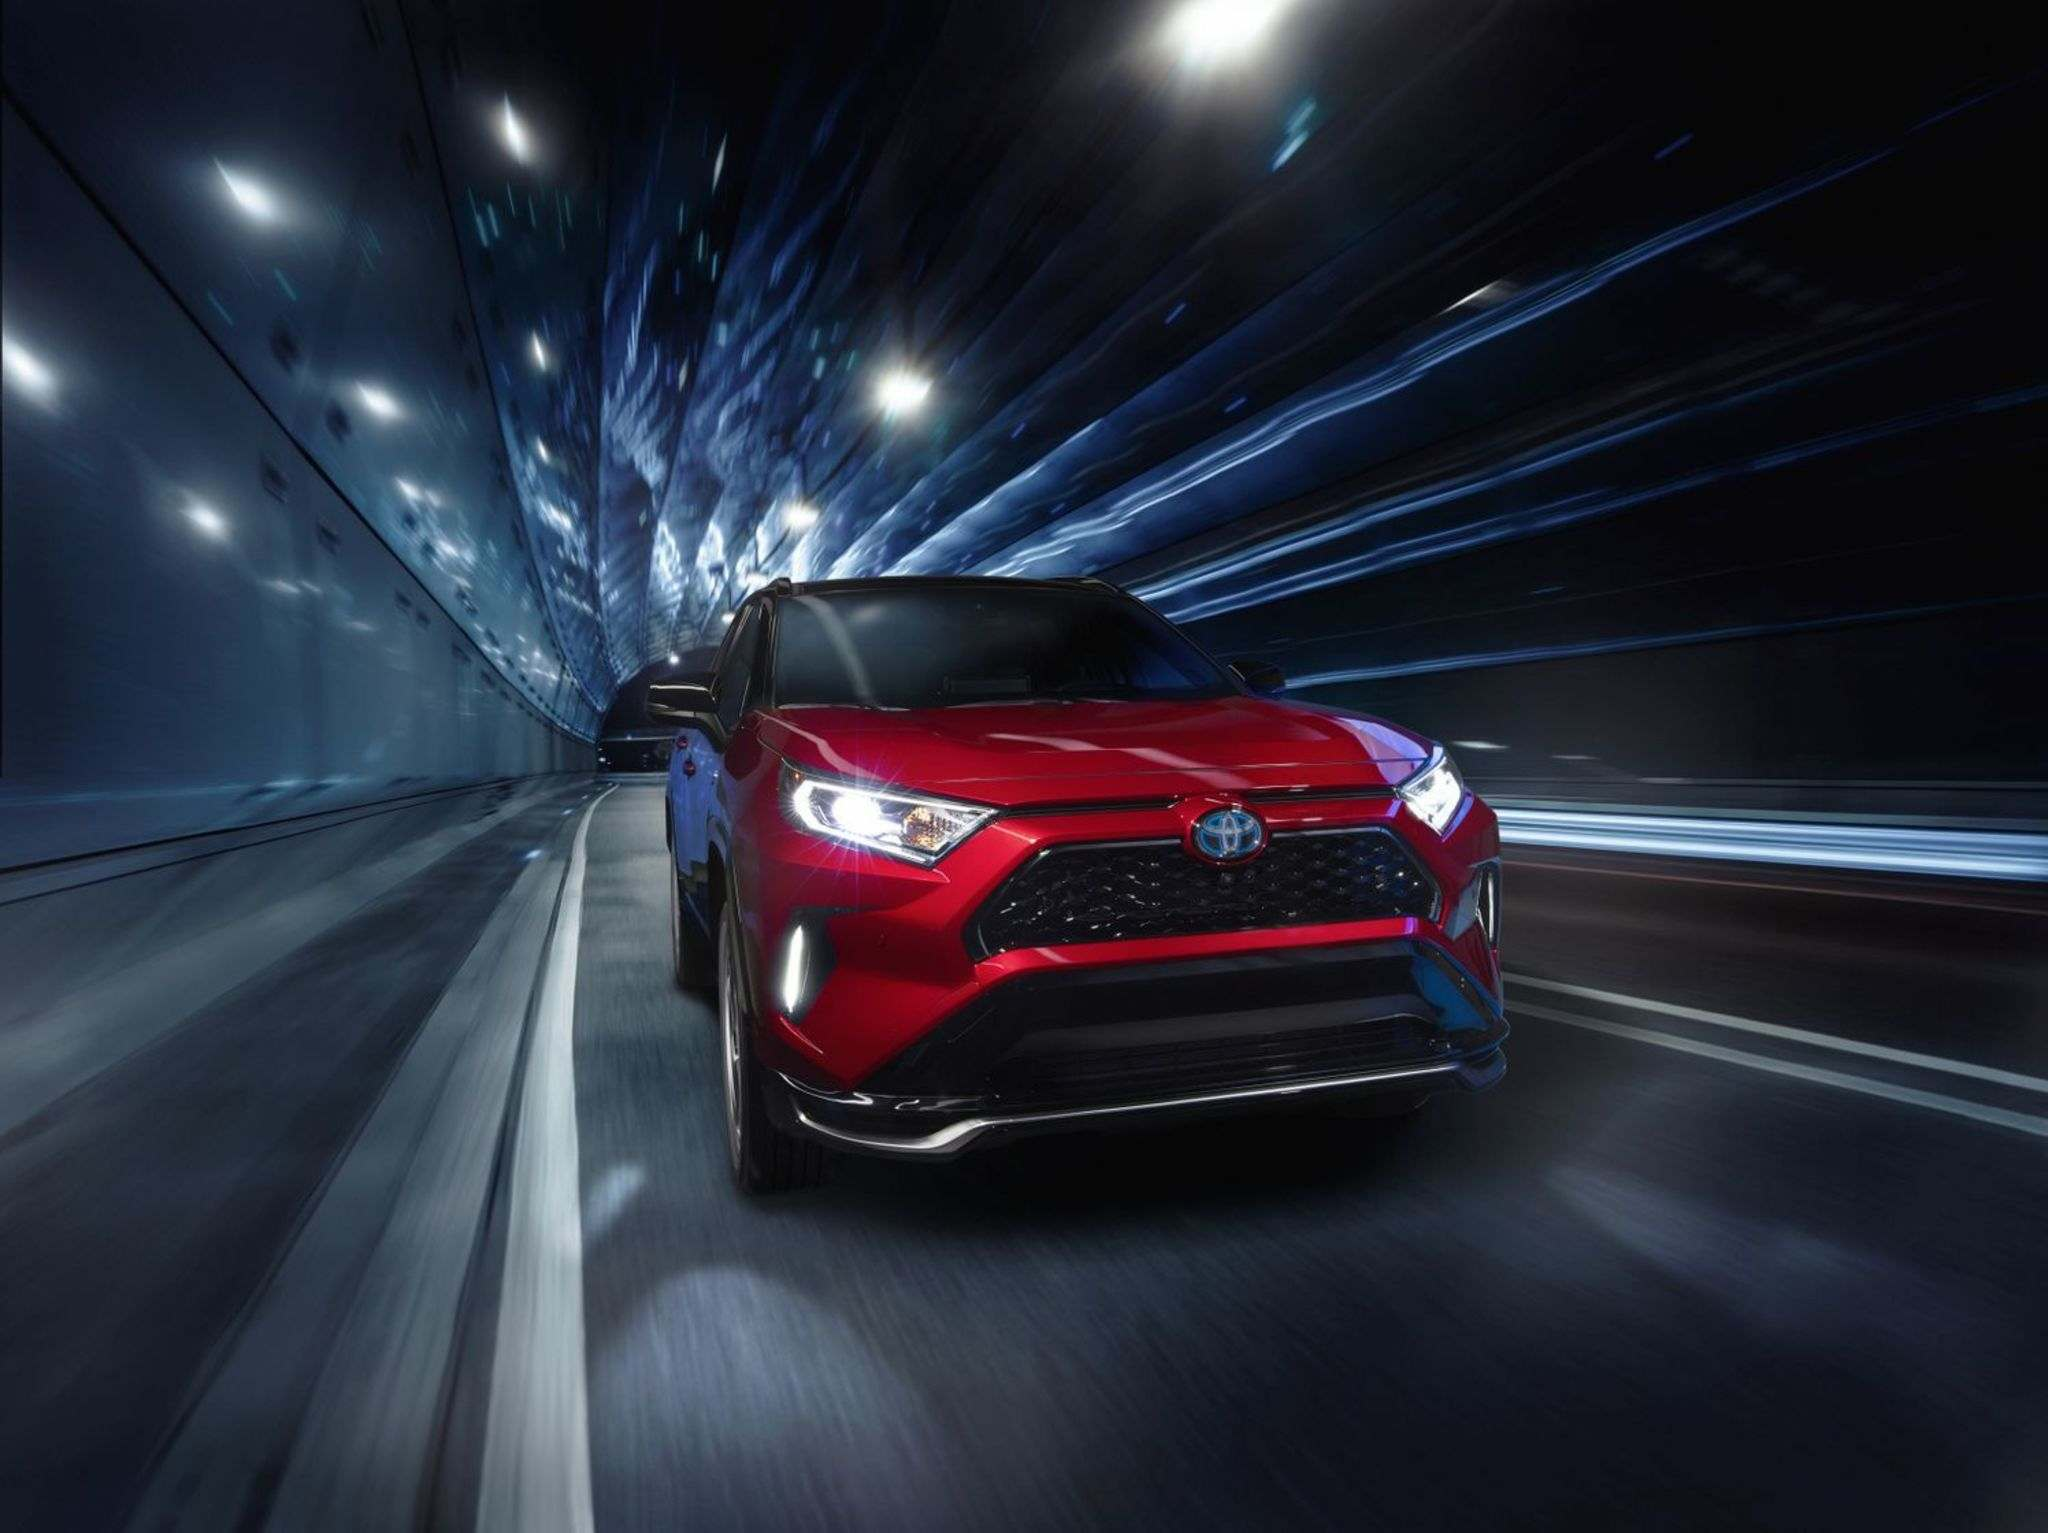 The EV range of the RAV4 Prime is best in class at 60 kilometres, which is enough for most Canadians' daily commutes. The 2021 Toyota RAV4 Prime plug-in hybrid will be available in the summer of 2020.</p>